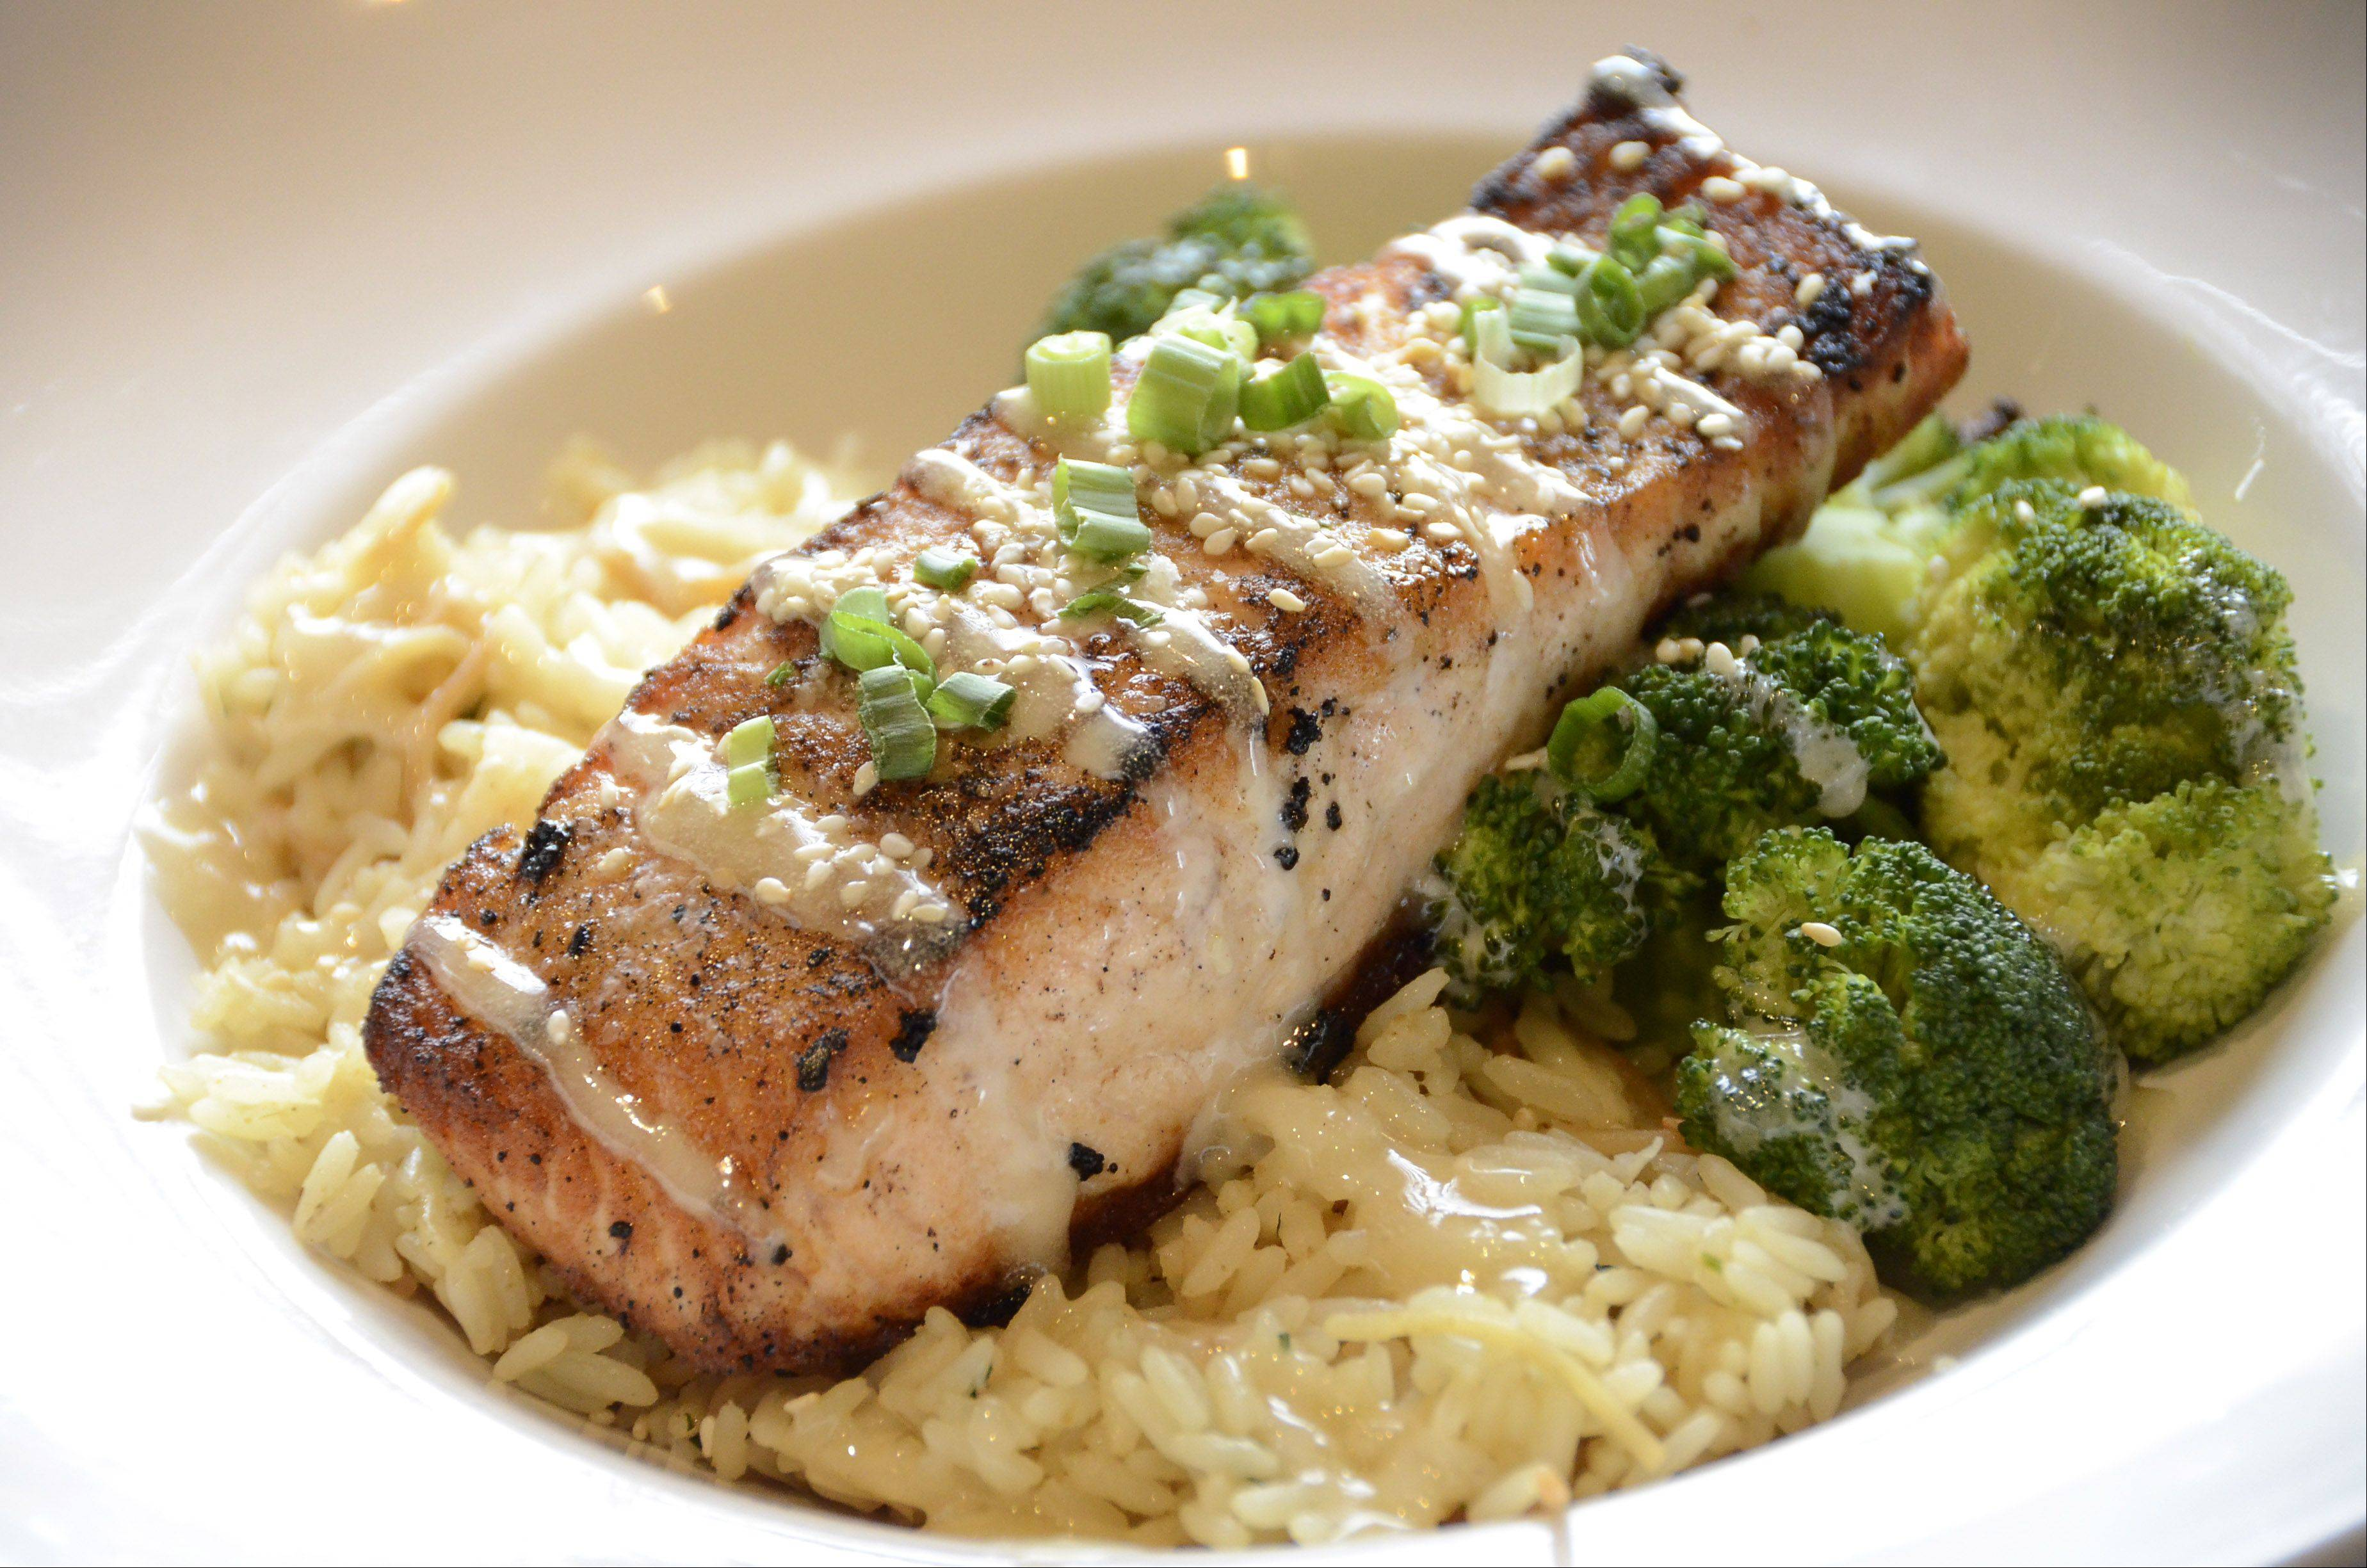 The Catch of the Day changes daily at BlackFinn American Grill in Randhurst Village in Mount Prospect. This selection is Sesame Salmon with Sweet Asian Dressing over rice and broccoli.